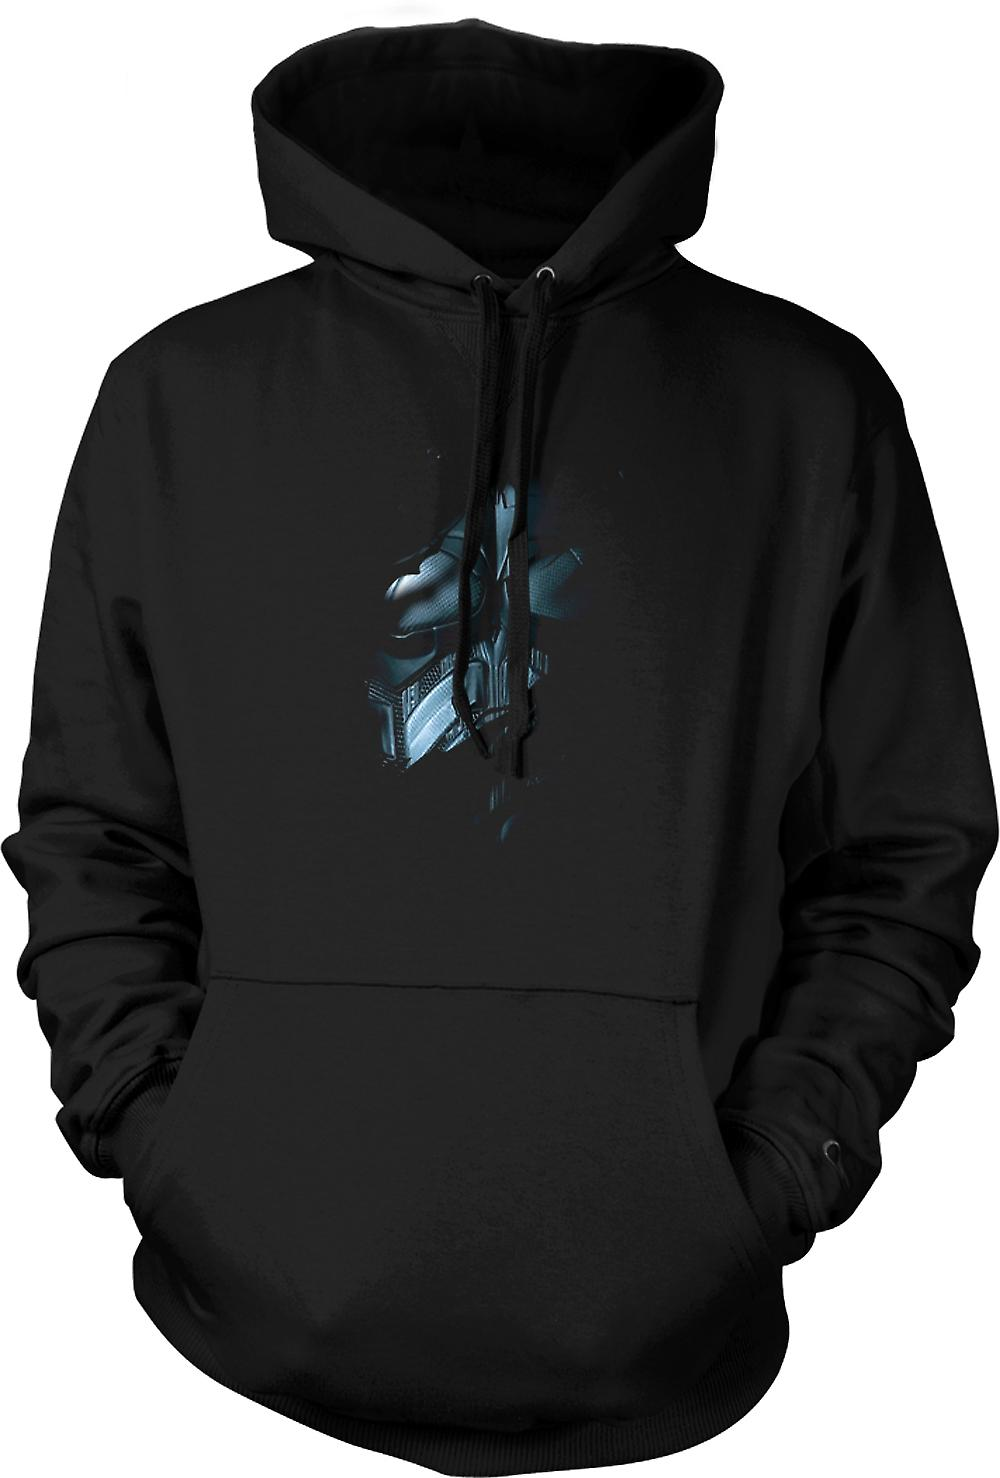 Mens Hoodie - costume de Batman - Superhero déchiré Design